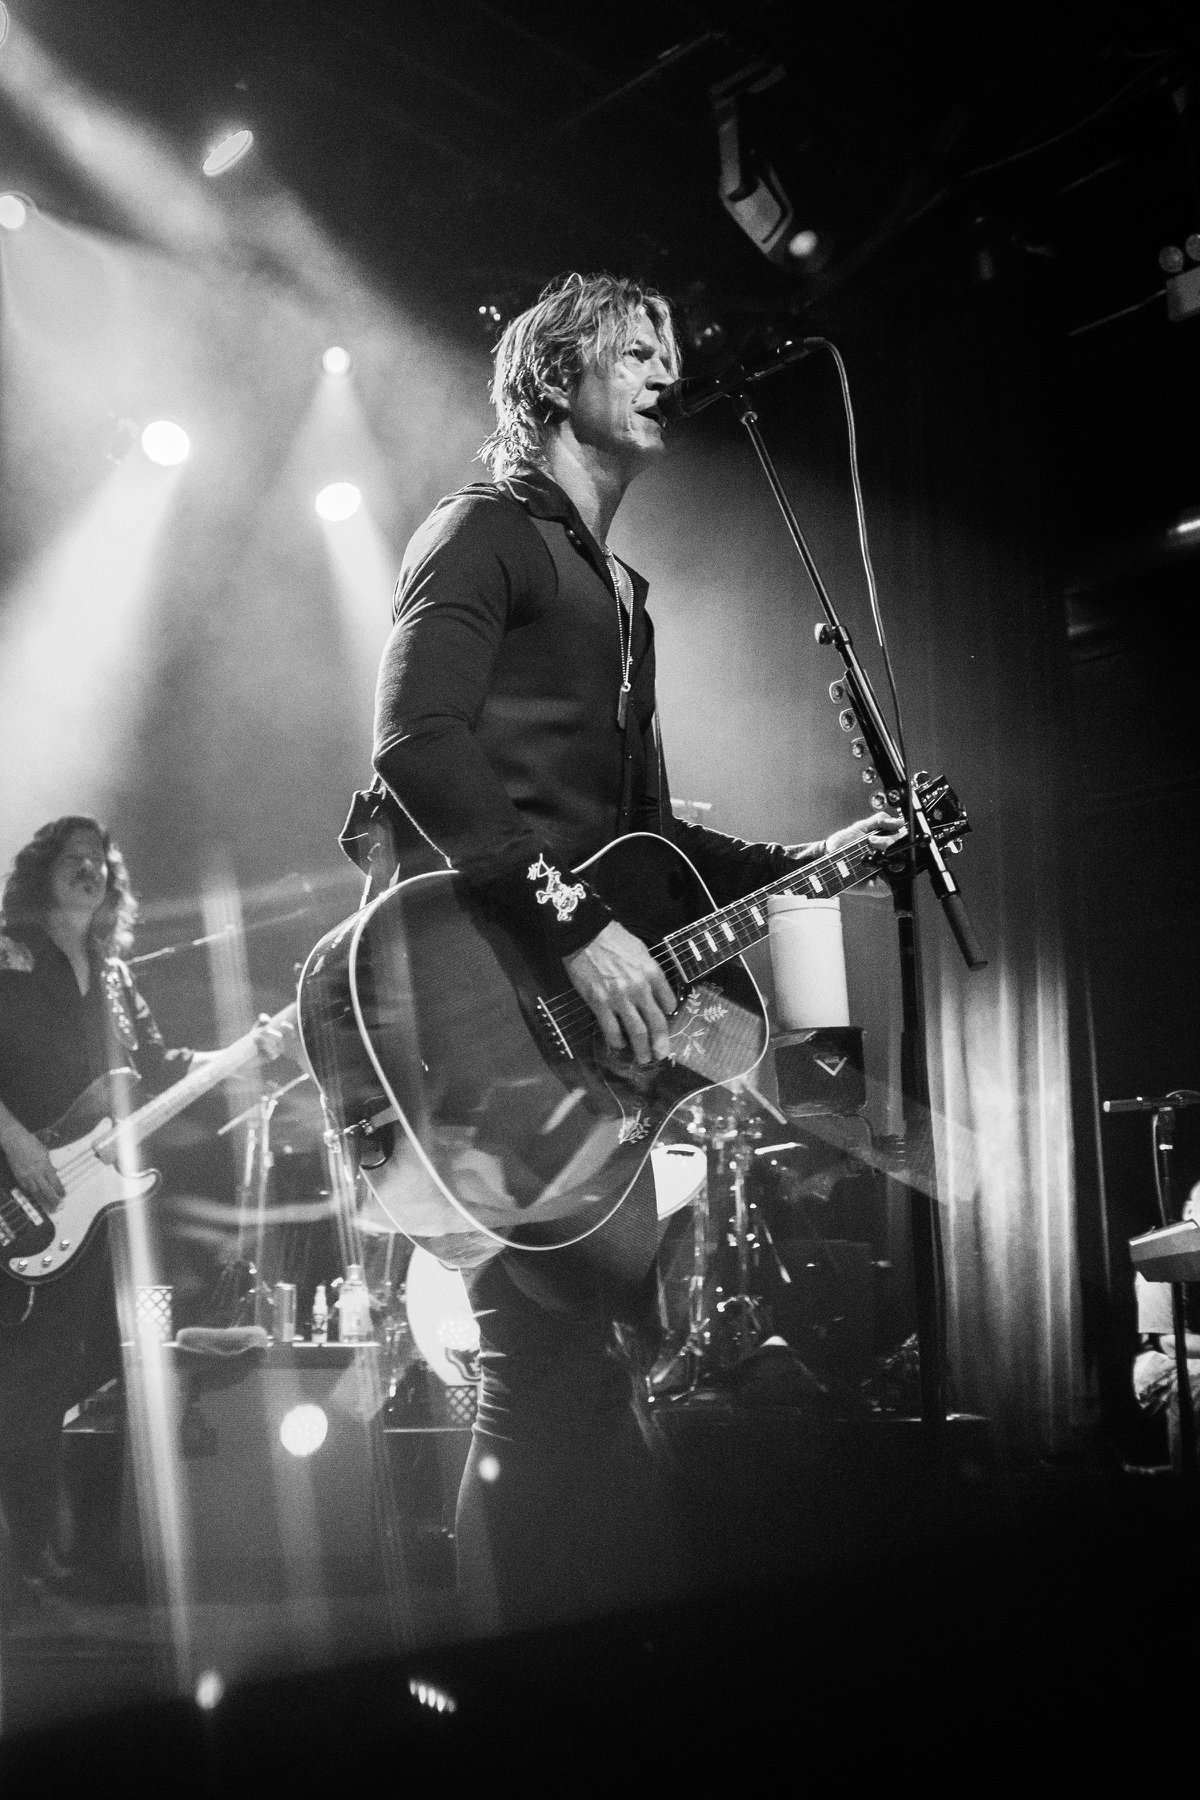 Duff McKagan performing at one of the shows from his recent Tenderness tour